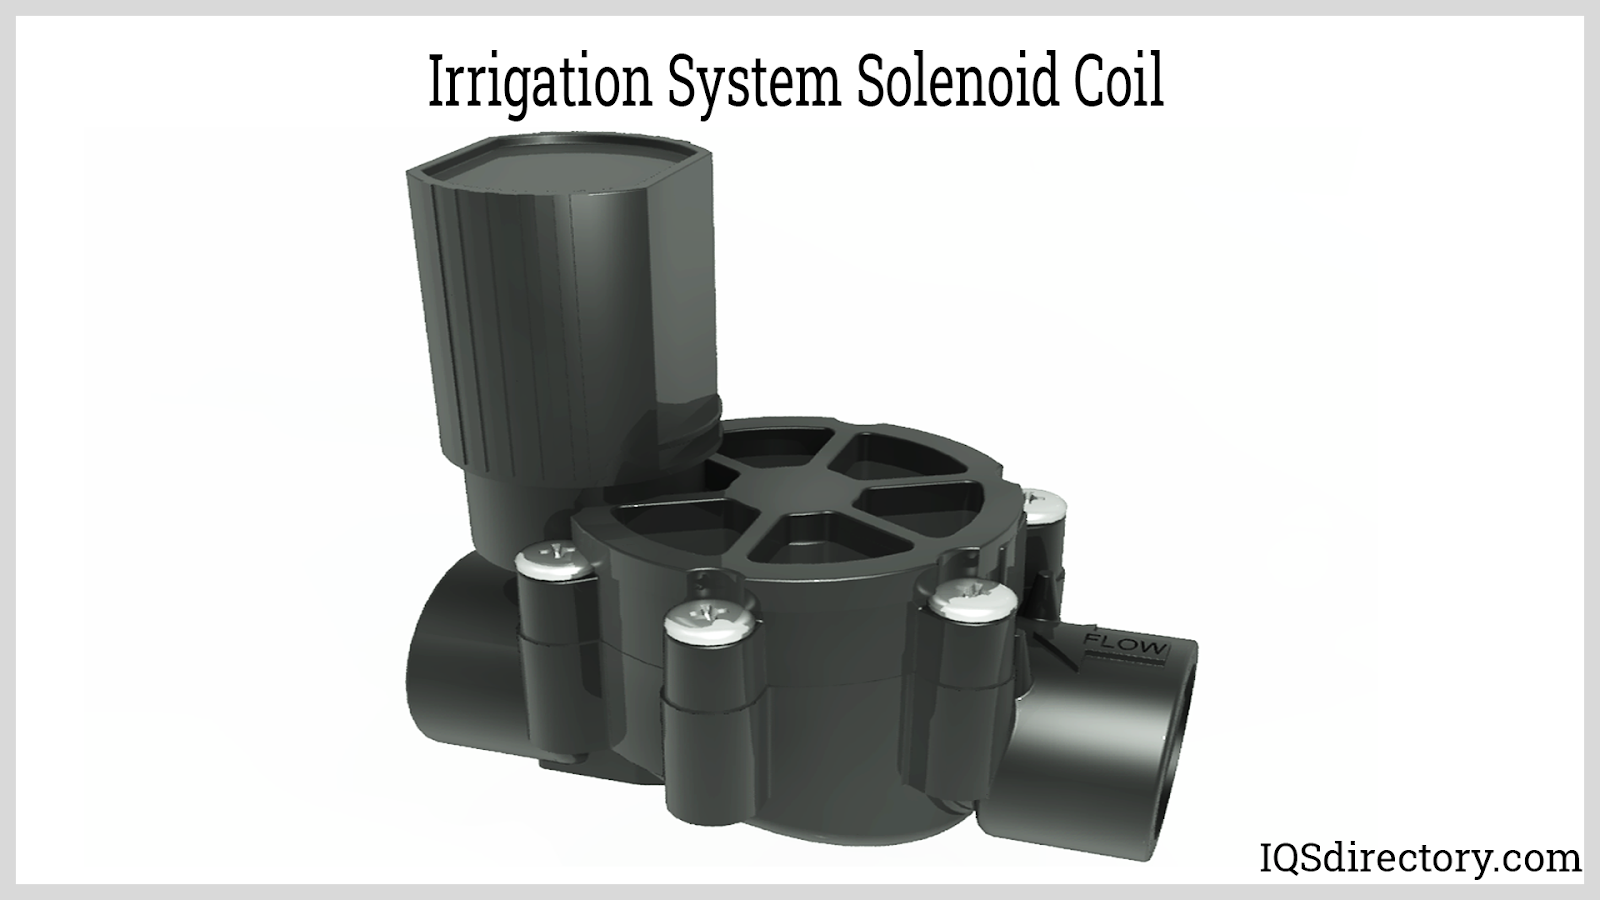 Irrigation System Solenoid Coil